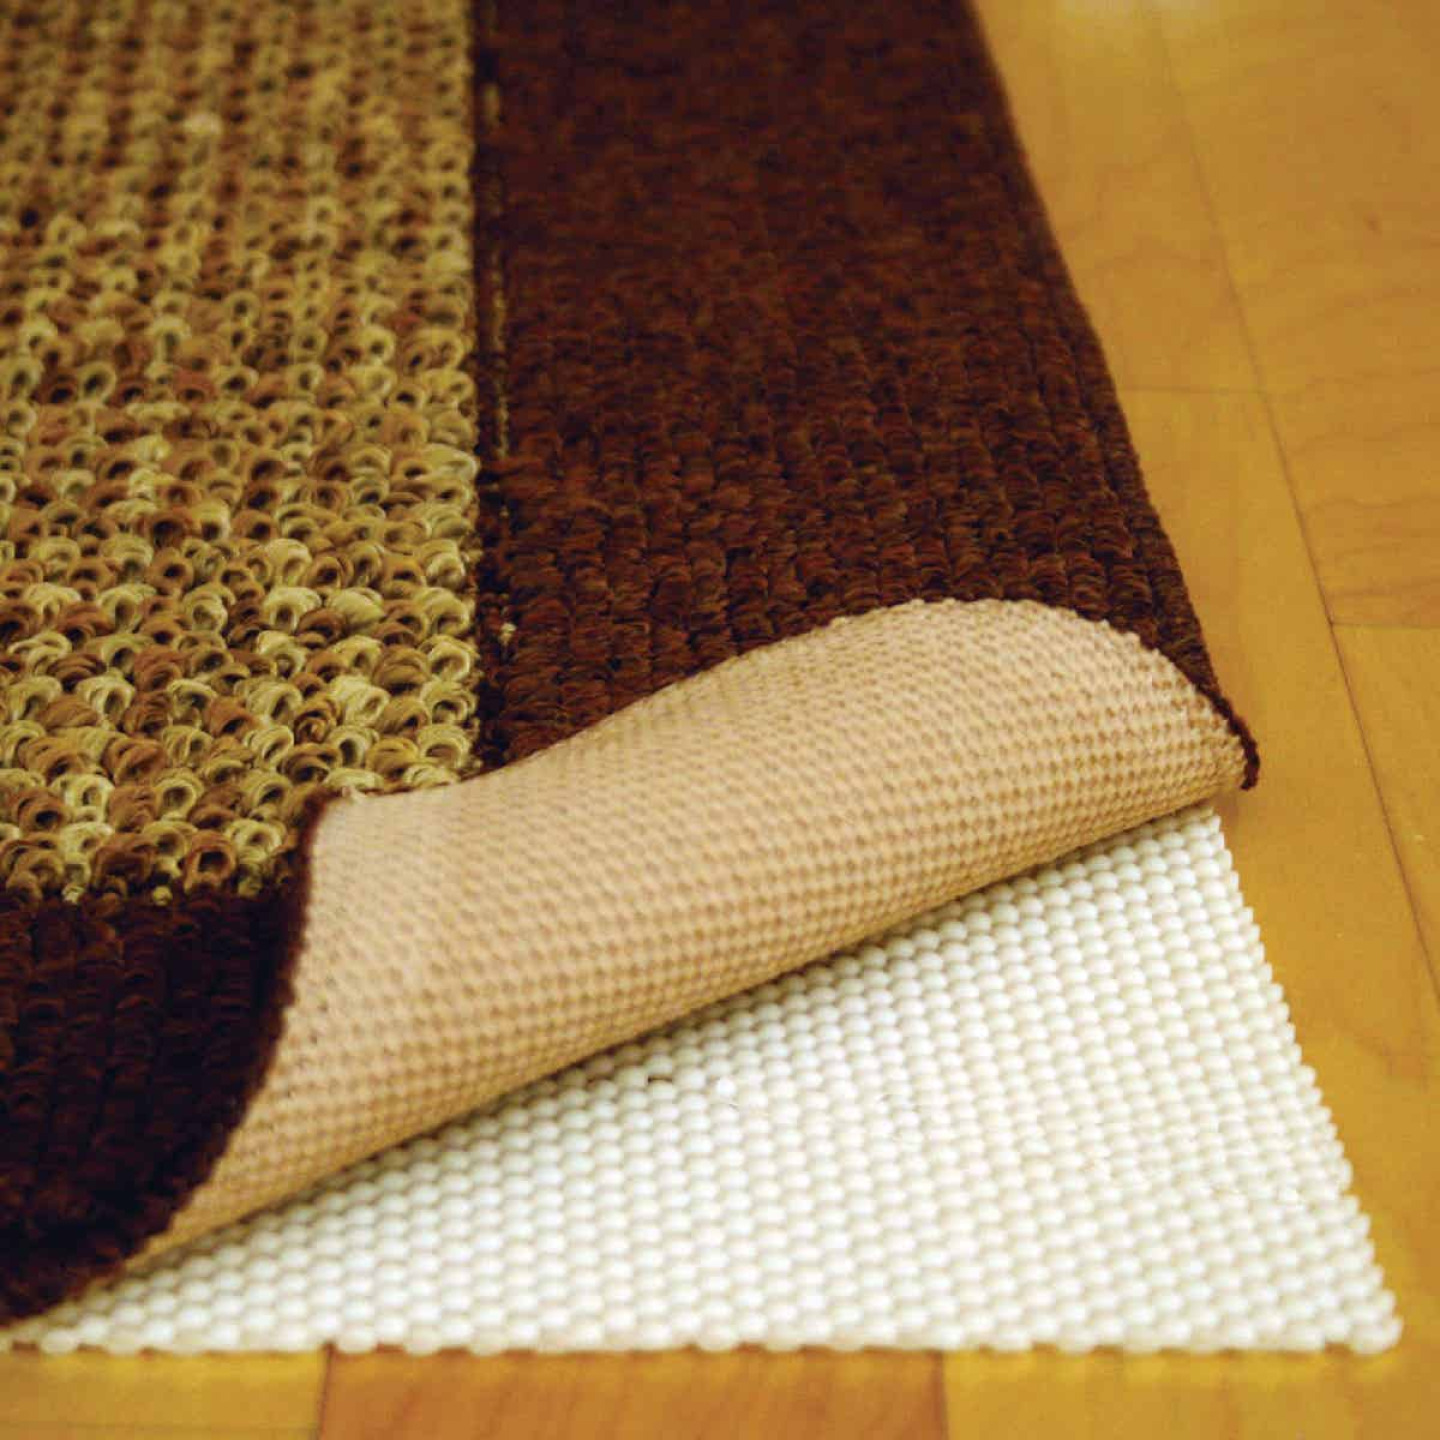 Mohawk Home 2 Ft. 4 In. x 3 Ft. 6 In. Better Quality Nonslip Rug Pad Image 1